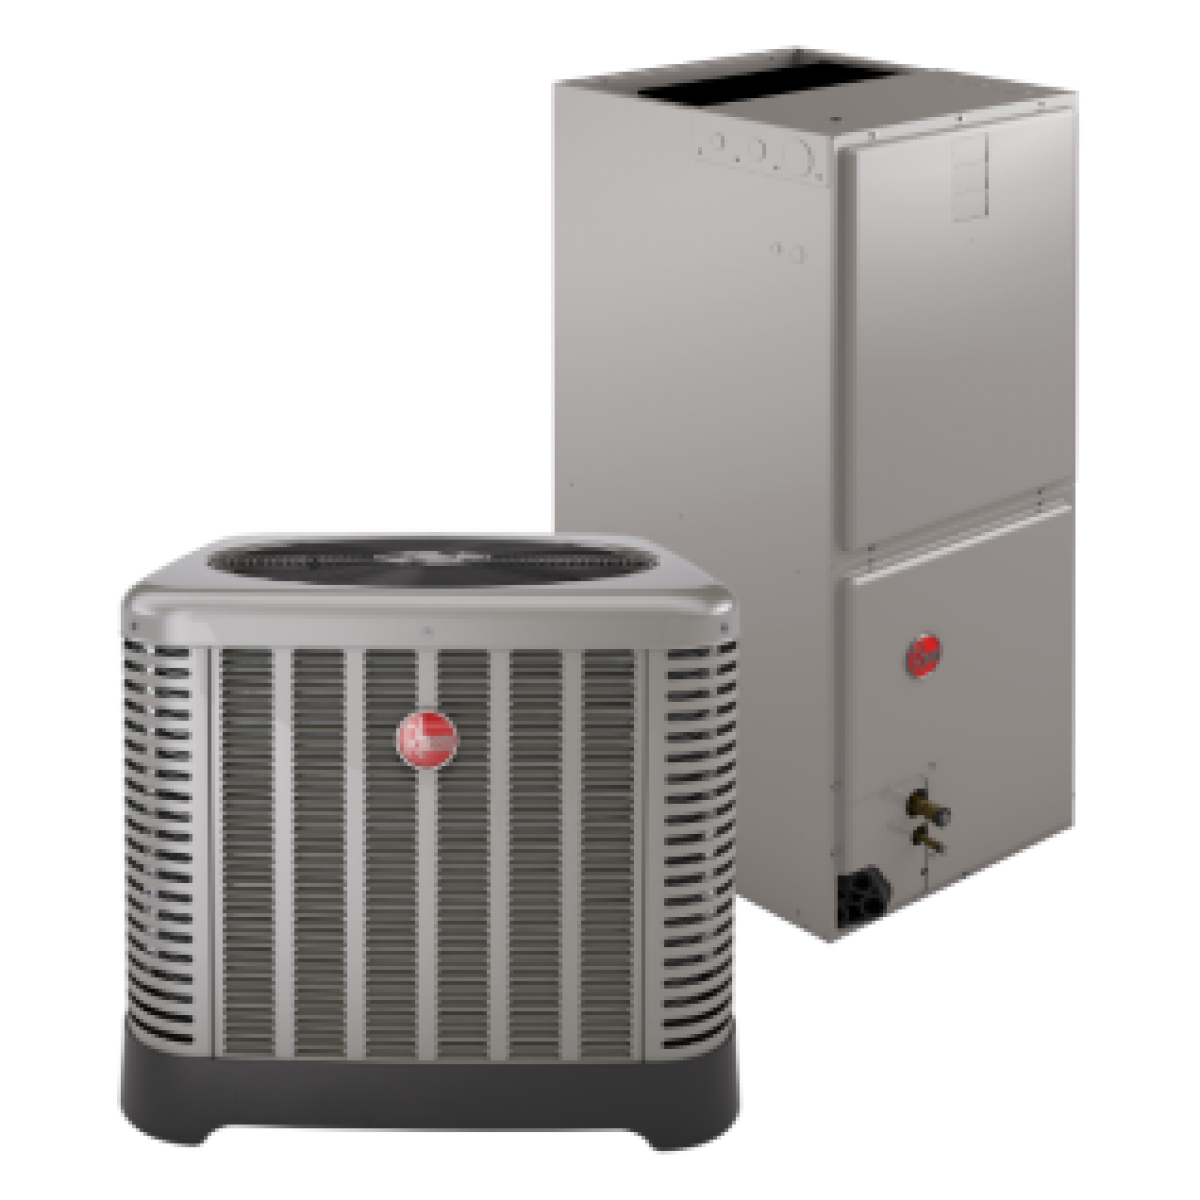 Ac Unit Prices >> Rheem 15 SEER 3.5 Ton Electric Heat System in 3.5 Ton - 5.0 Ton - AC/Electric Heat - Systems